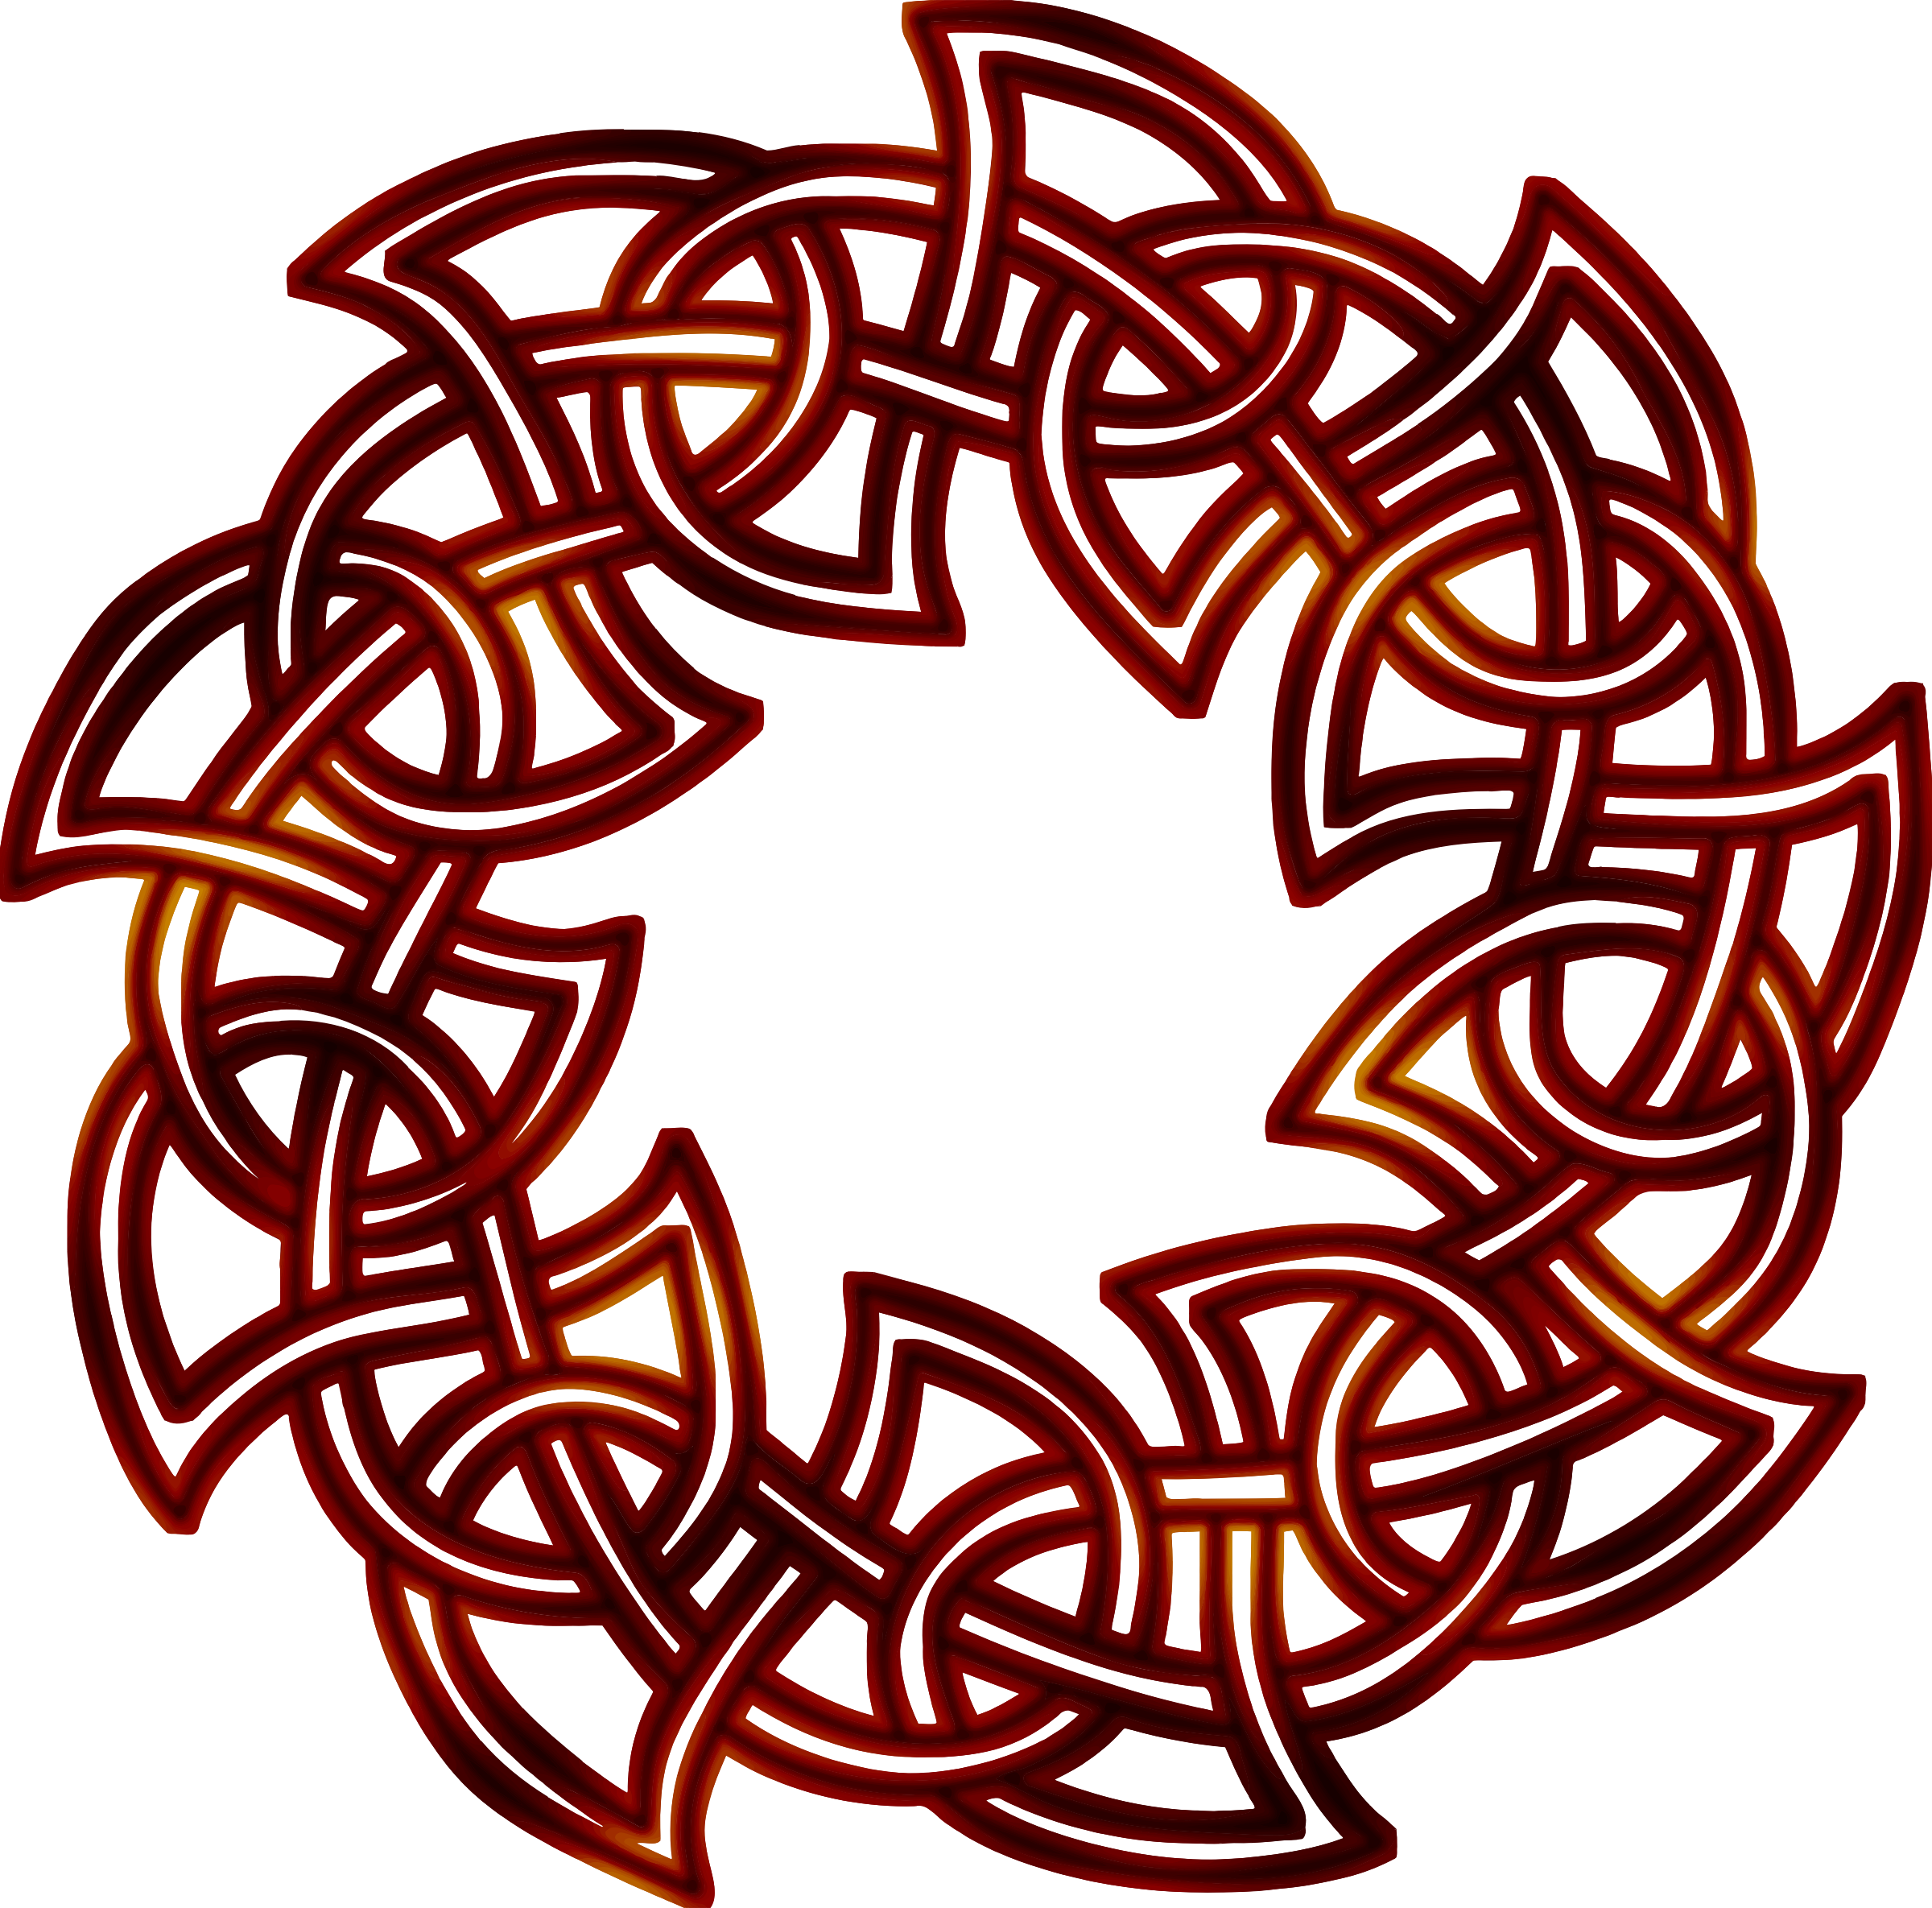 Celtic knot 2 (colour 3) by Firkin